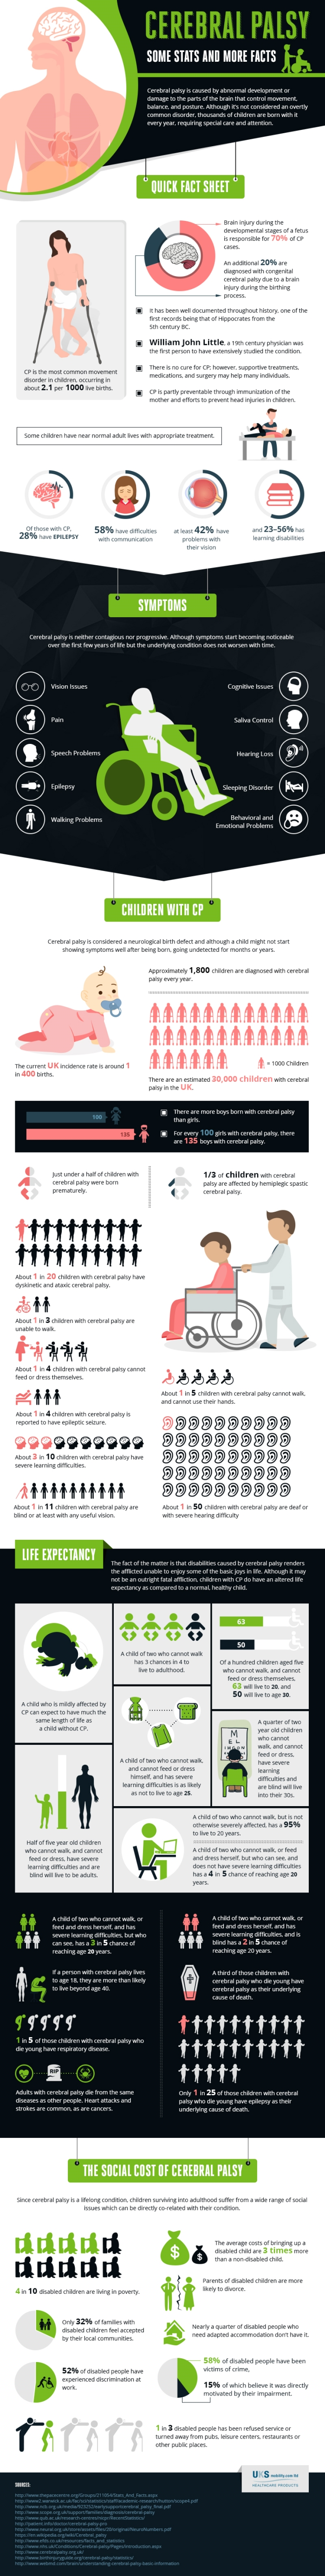 Cerebral Palsy - the facts